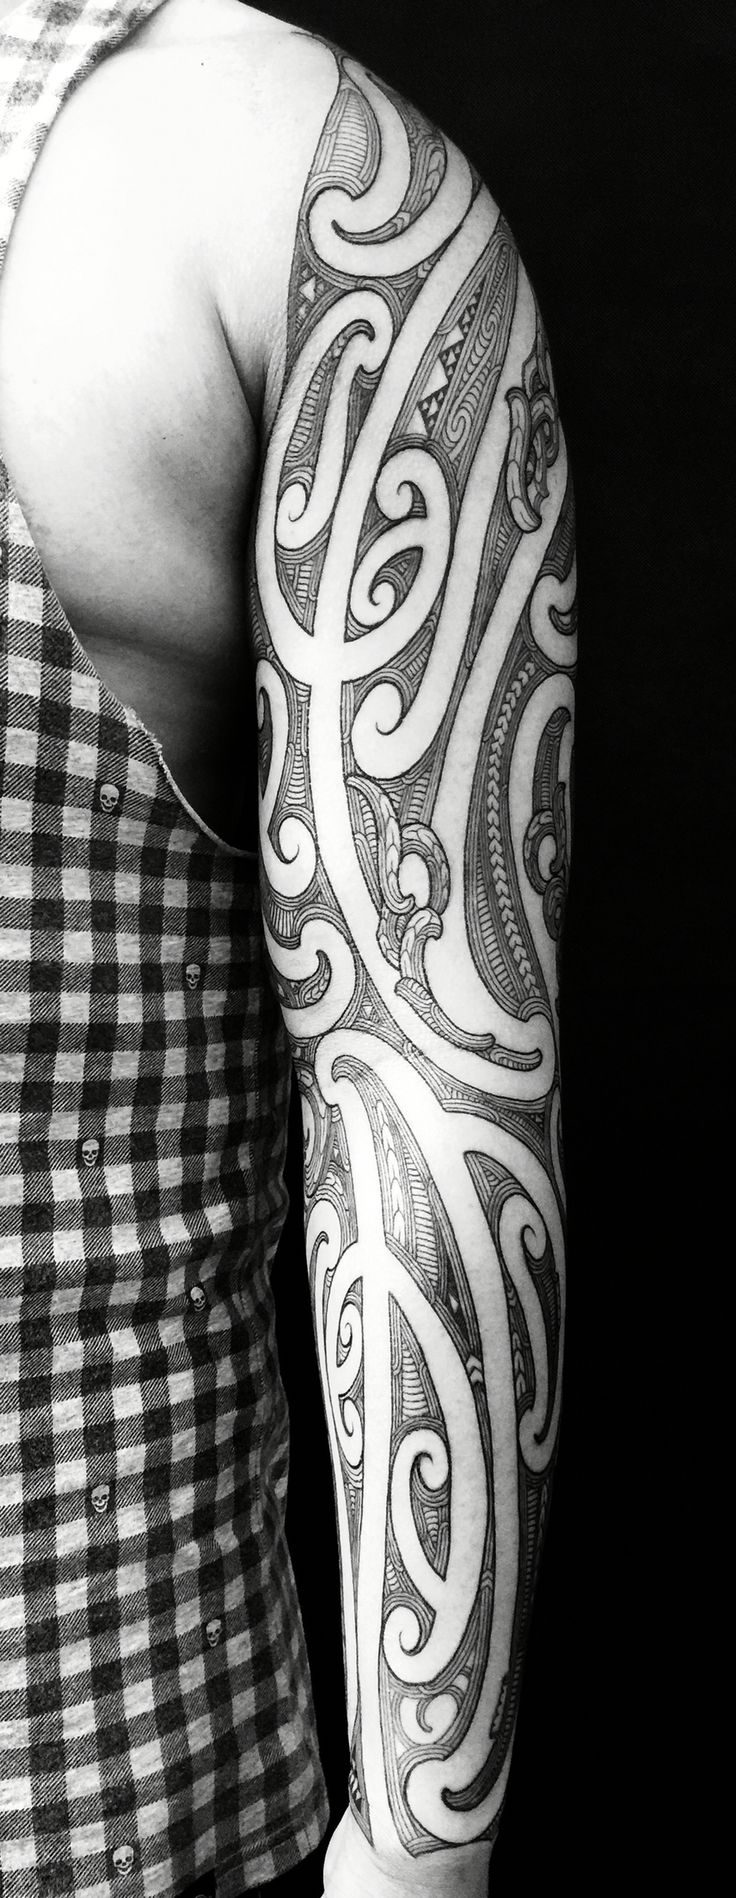 Moko sleeve by Wiremu Barriball